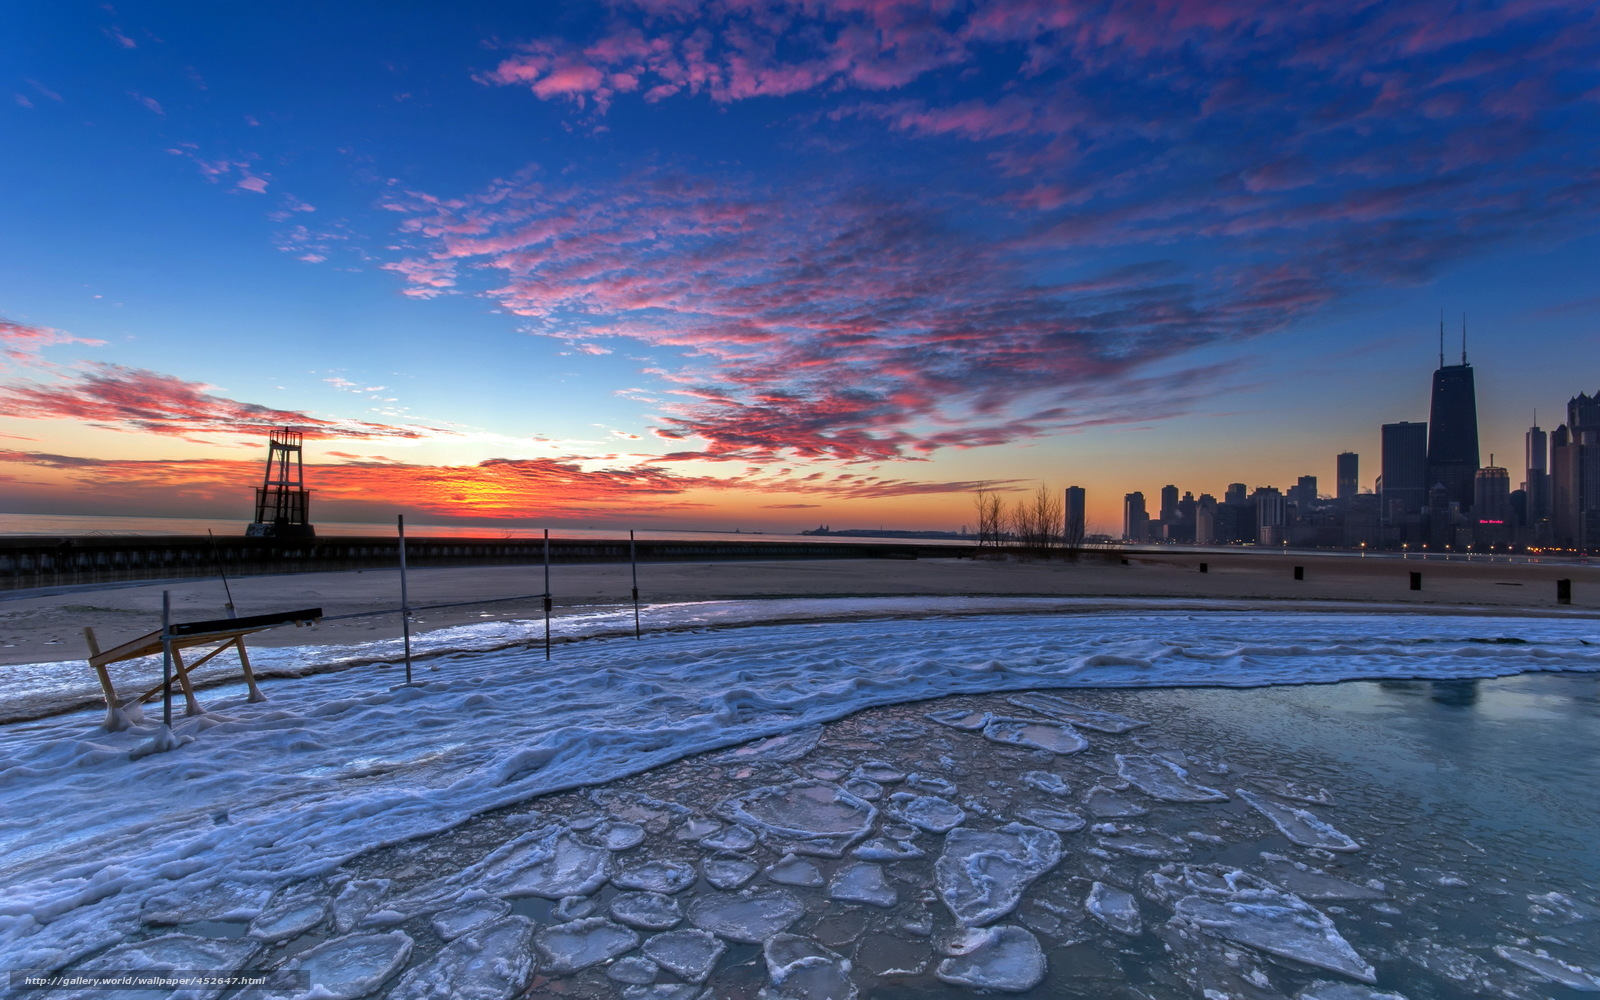 Download wallpaper united states illinois Chicago gold 1600x1000